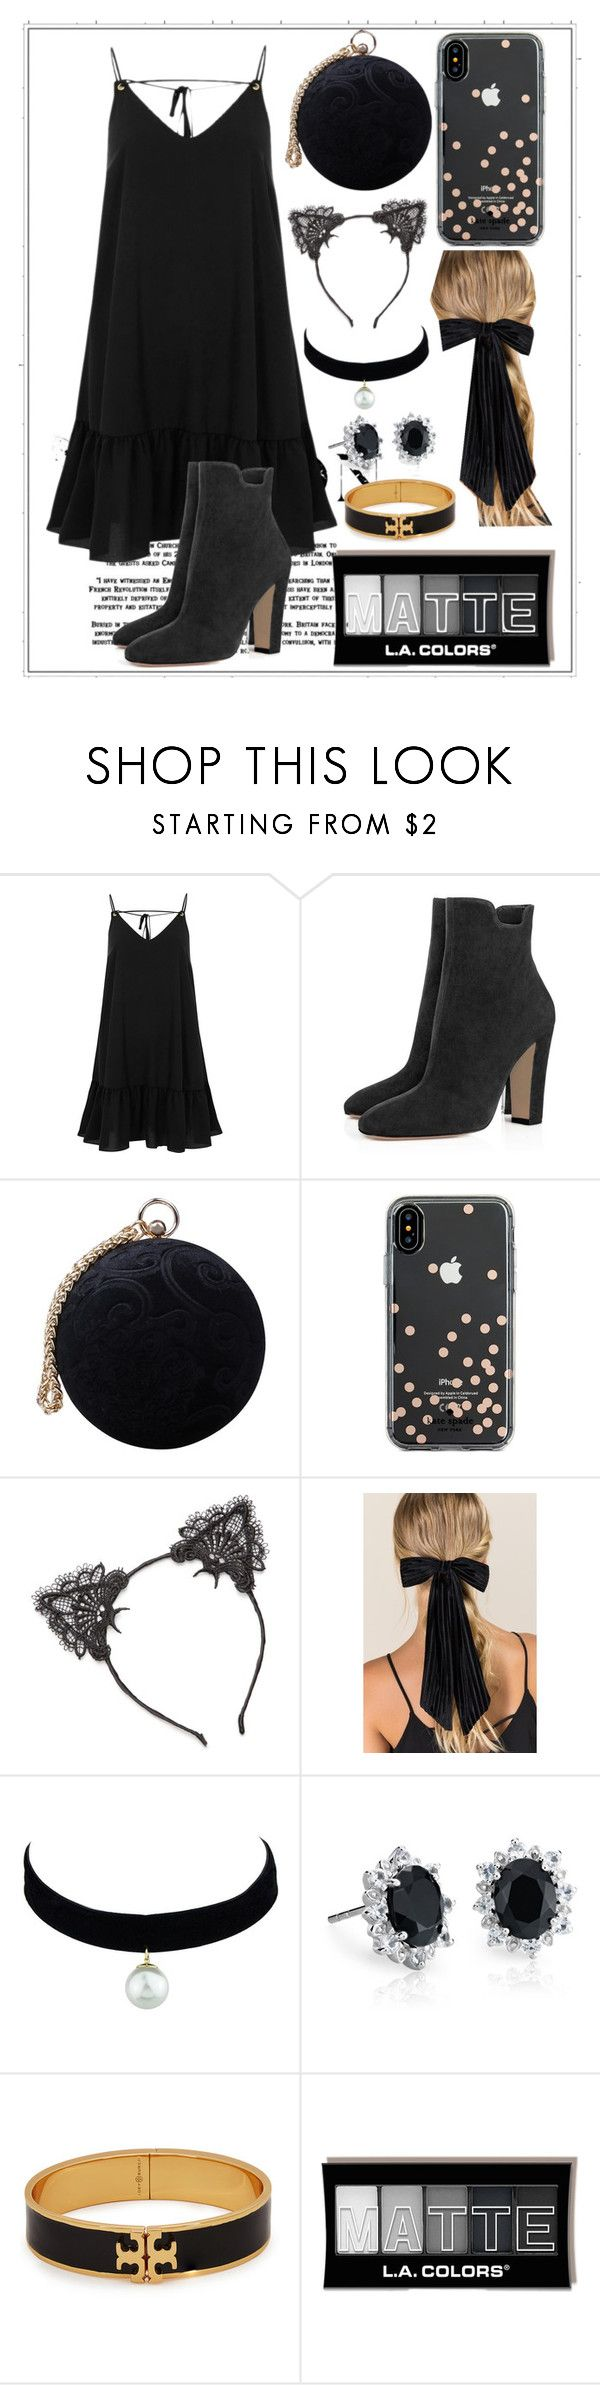 """""""067"""" by holography ❤ liked on Polyvore featuring River Island, Carvela, Kate Spade, True Craft, Francesca's, Blue Nile and Tory Burch"""